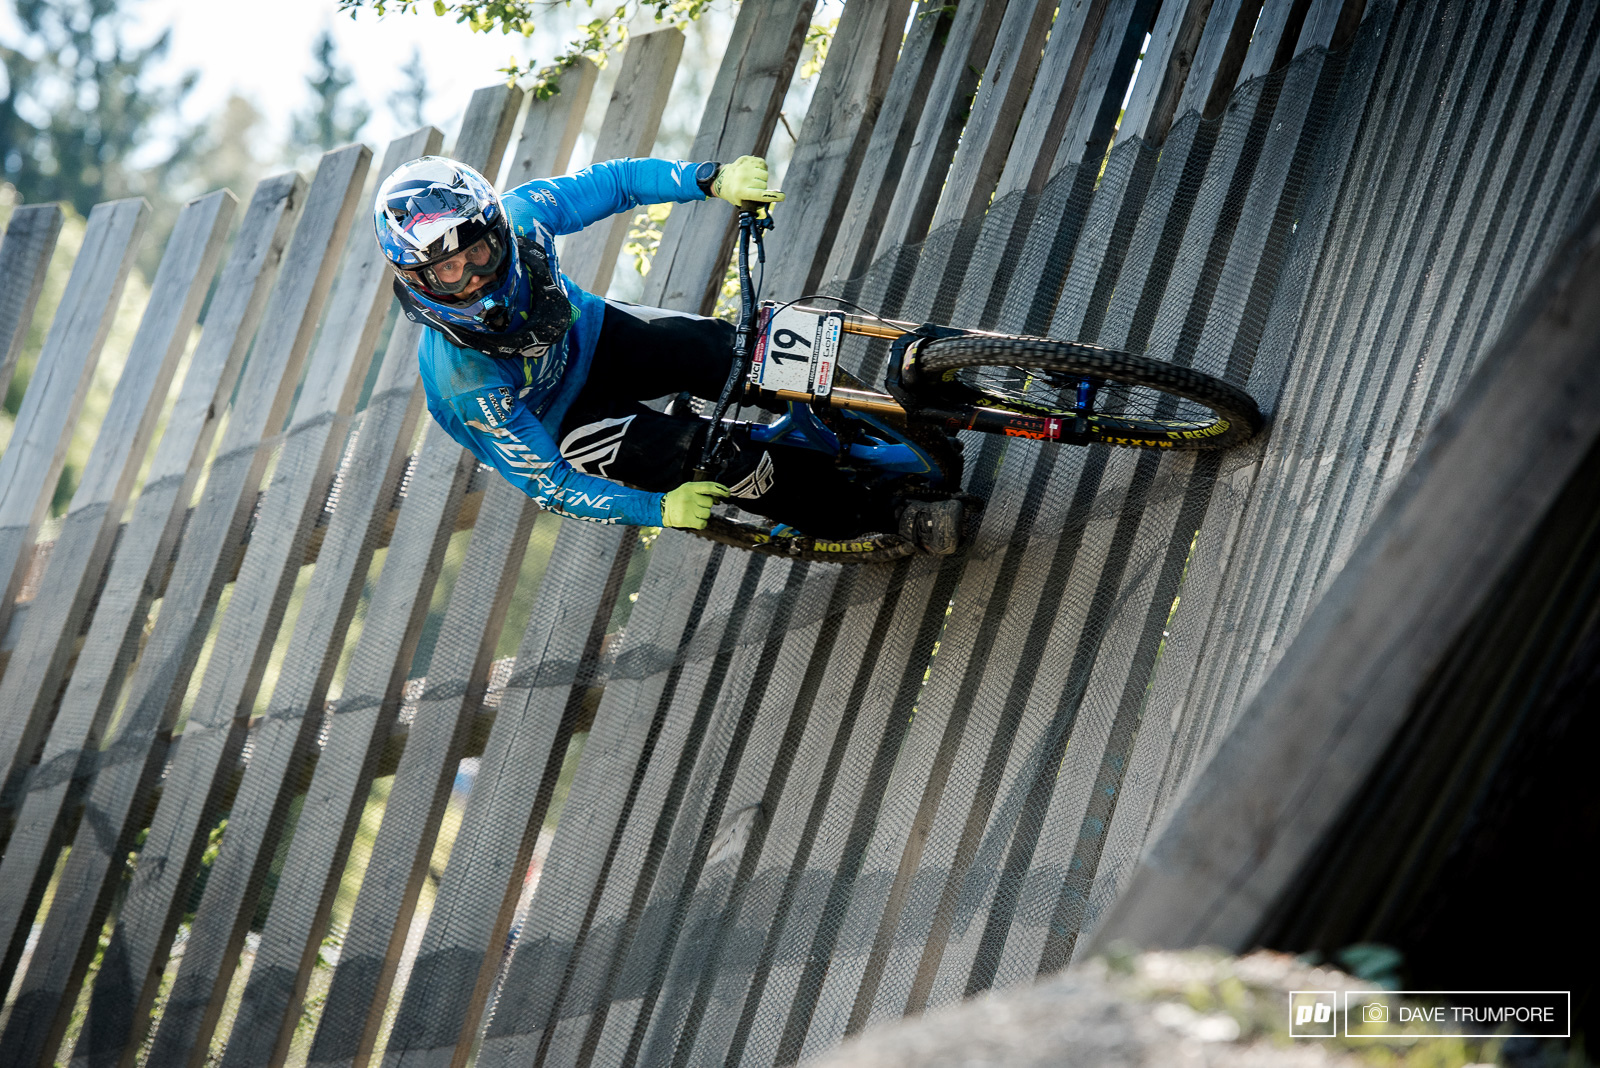 Bernard Kerr goes horizontal on the big wall ride.